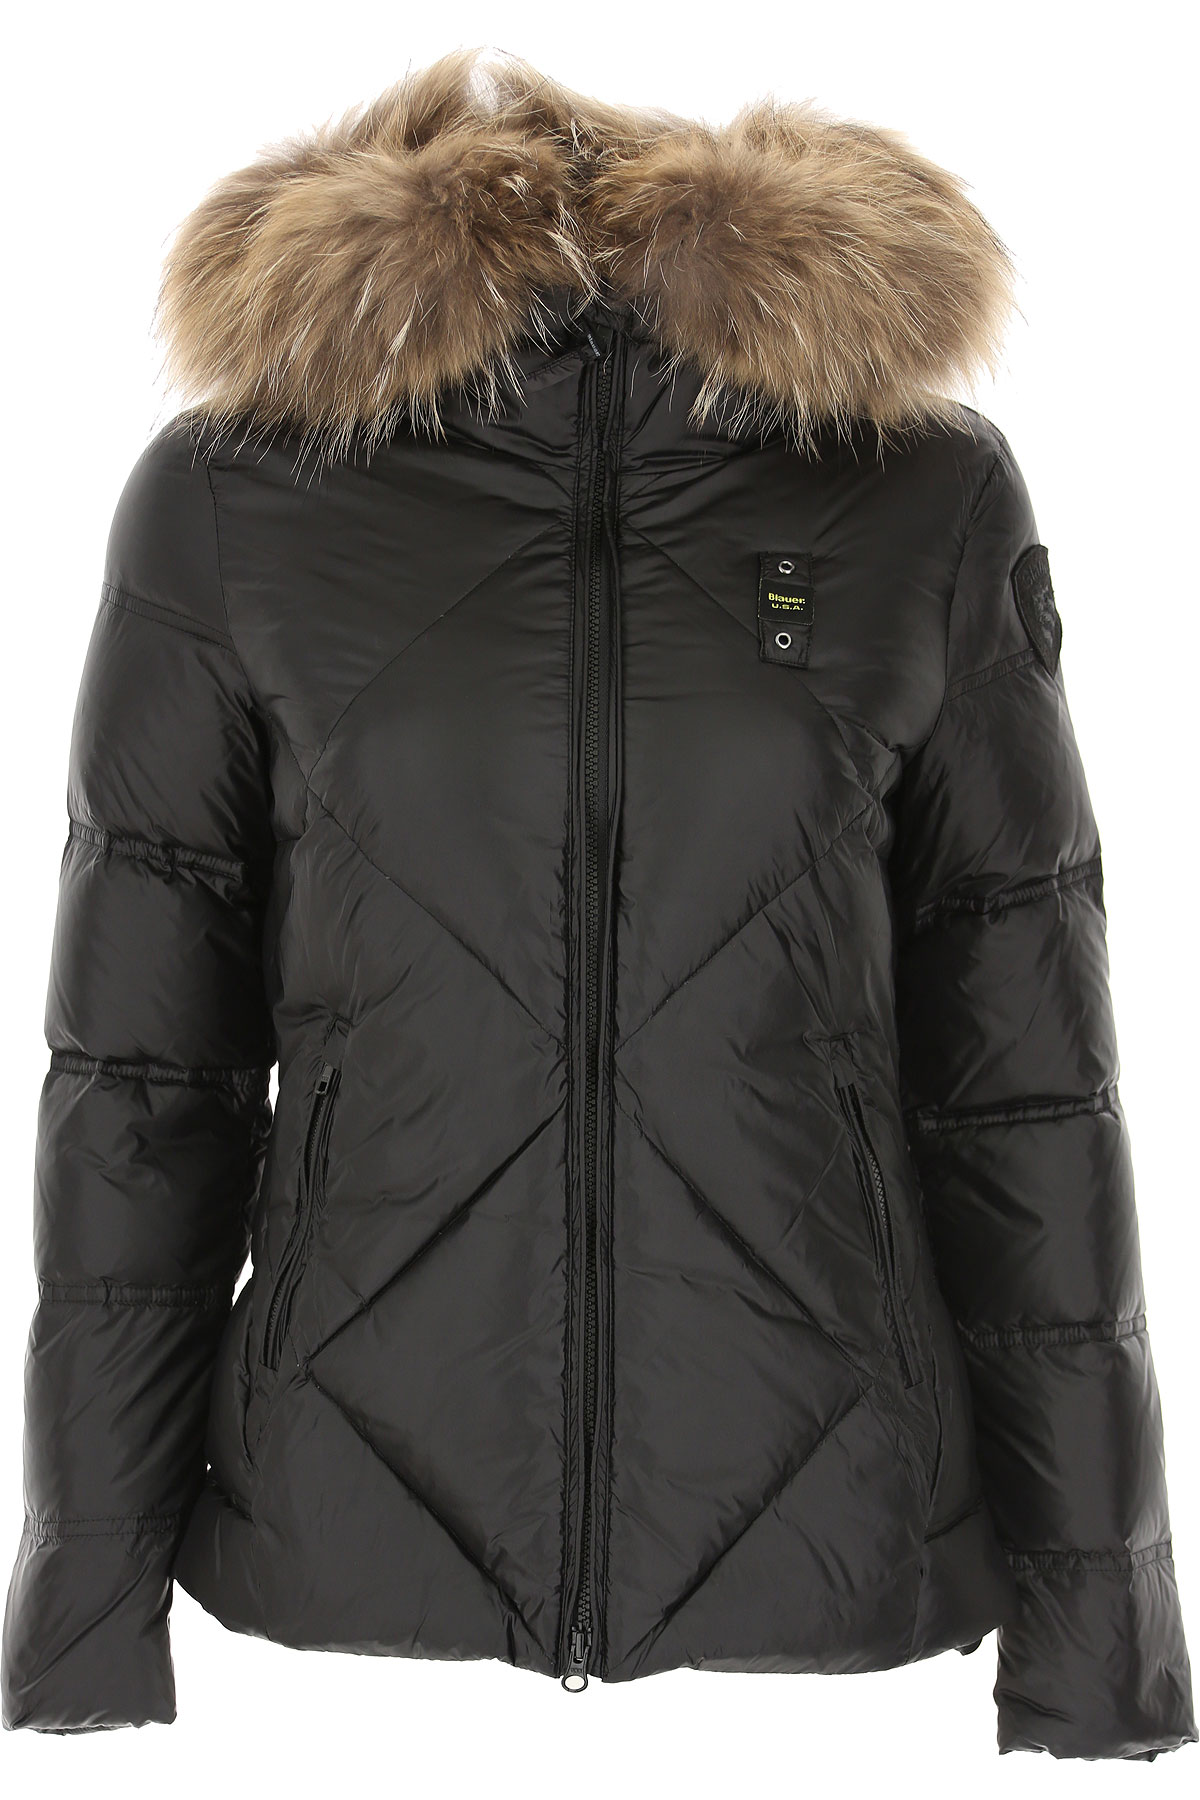 Blauer Down Jacket for Women, Puffer Ski Jacket On Sale, Black, polyester, 2019, 10 2 4 6